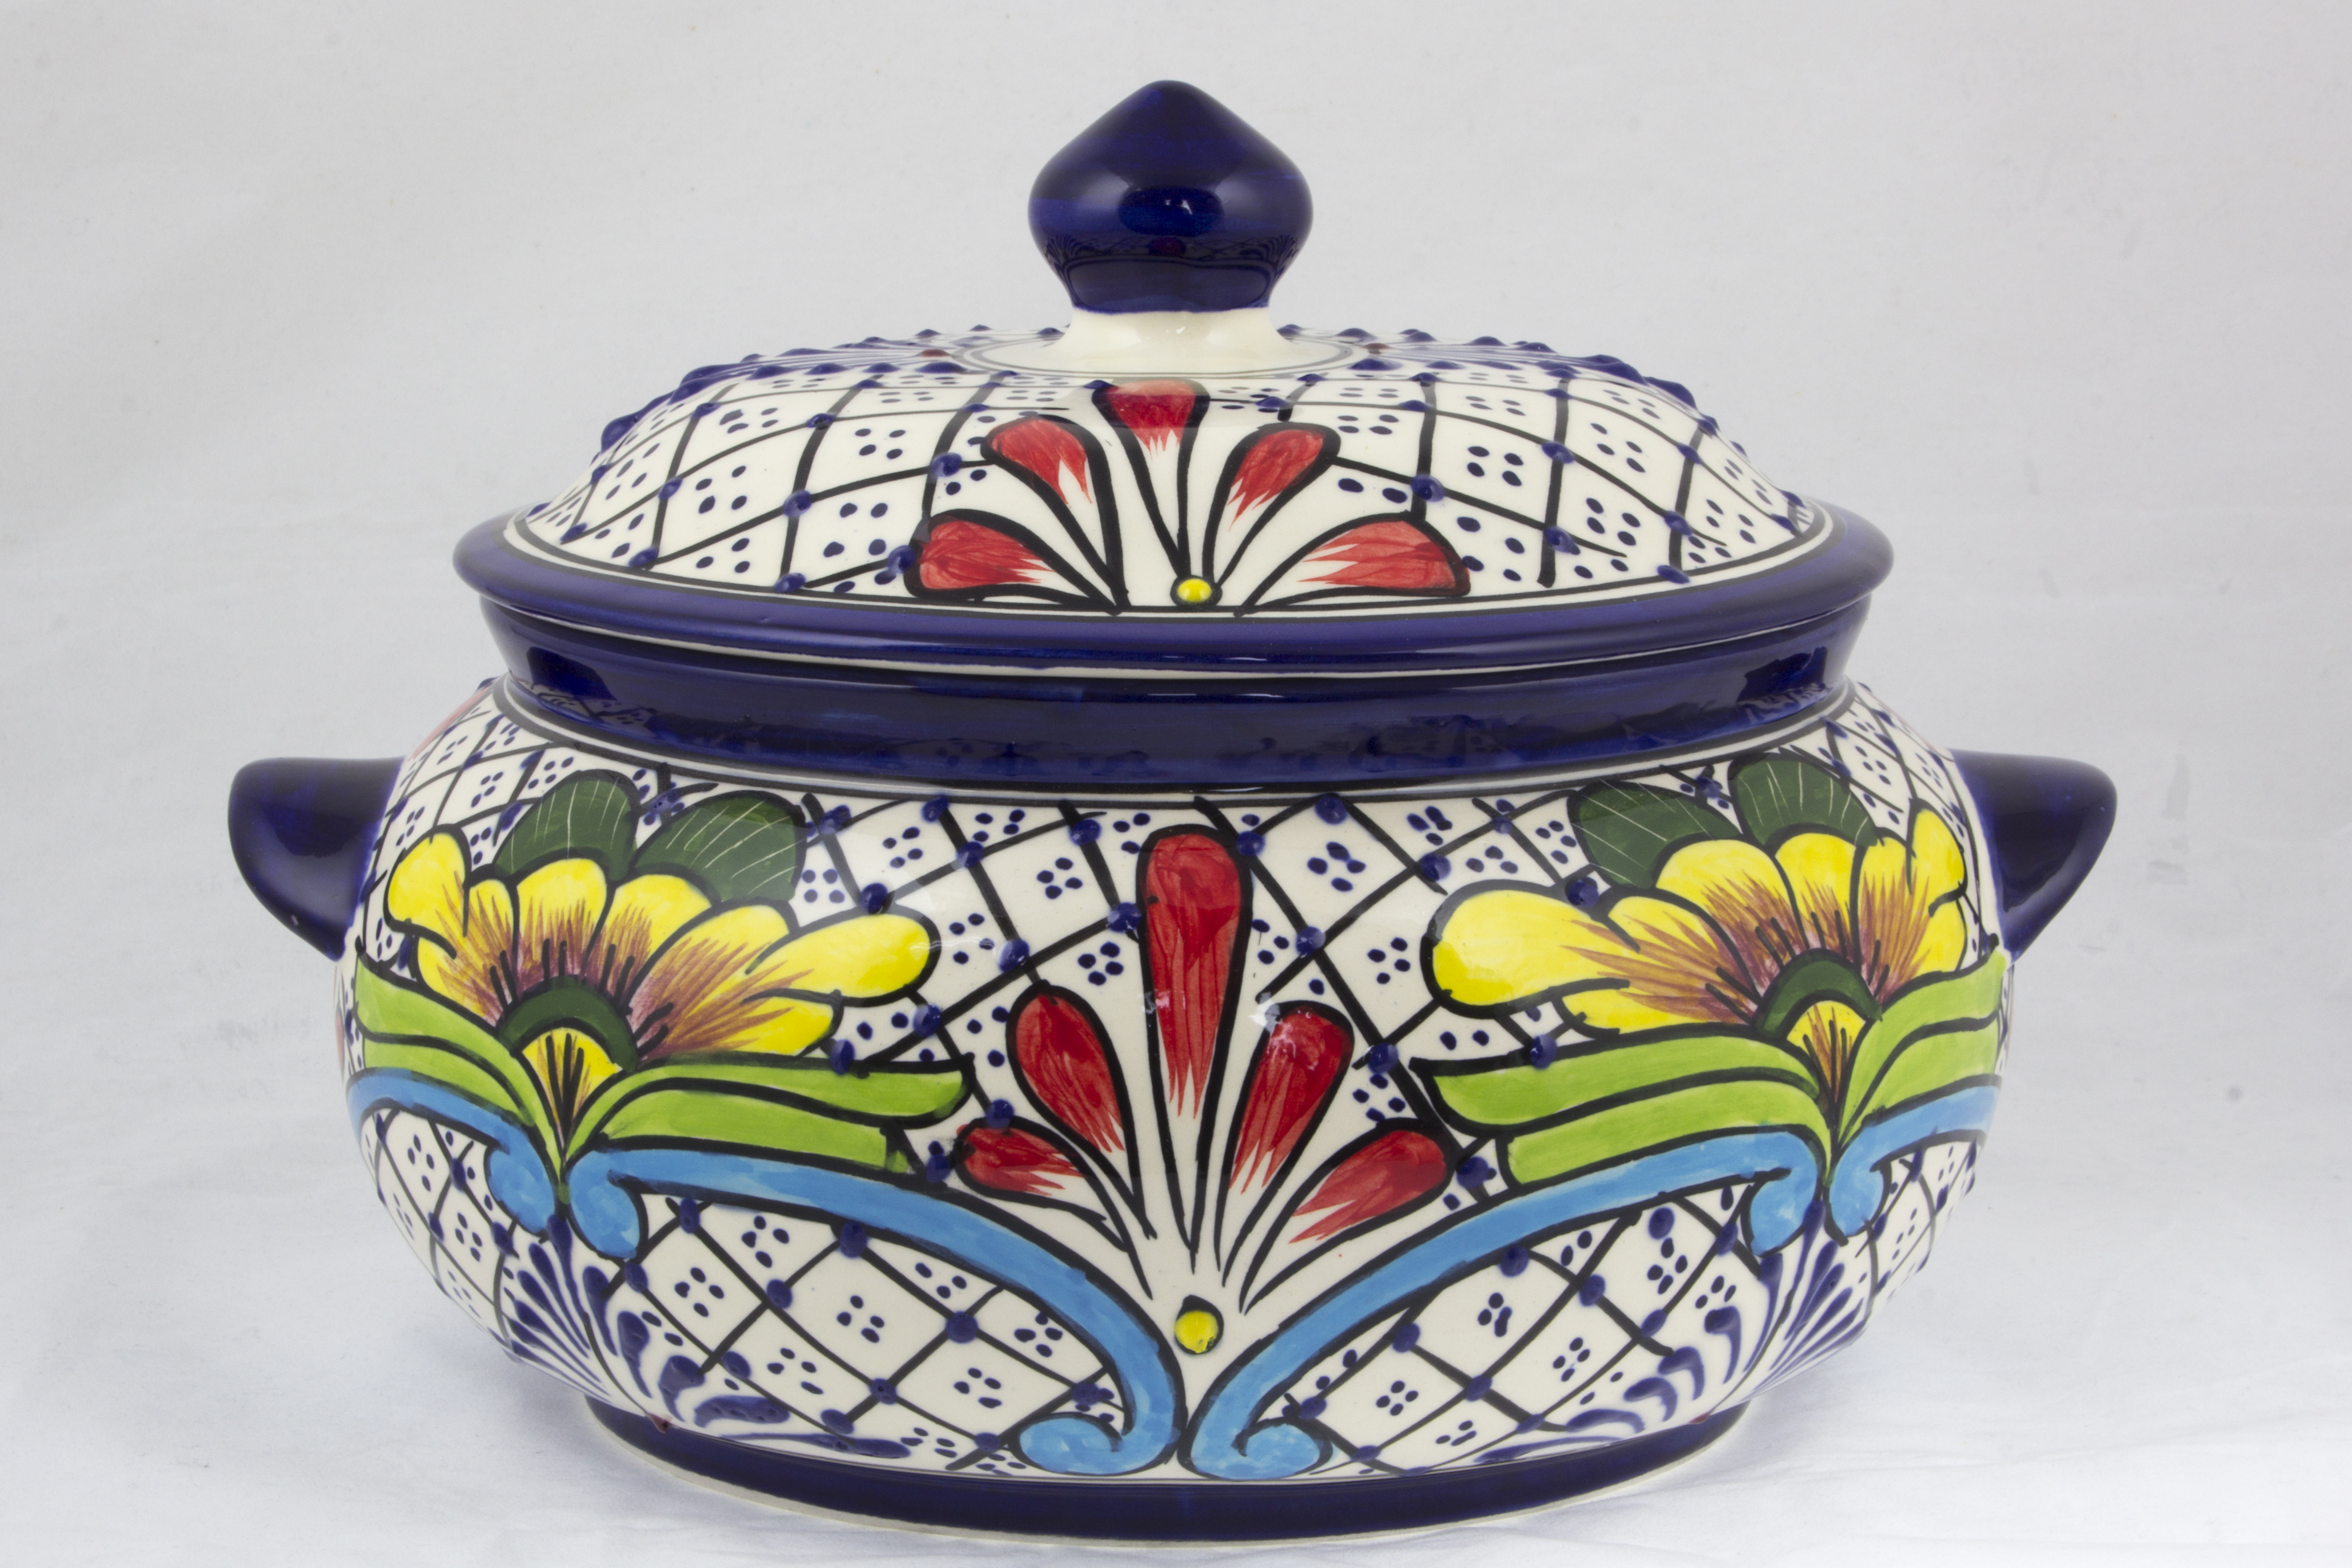 Floral Joy Talavera-Inspired Mexican Covered Ceramic Serving Bowl We